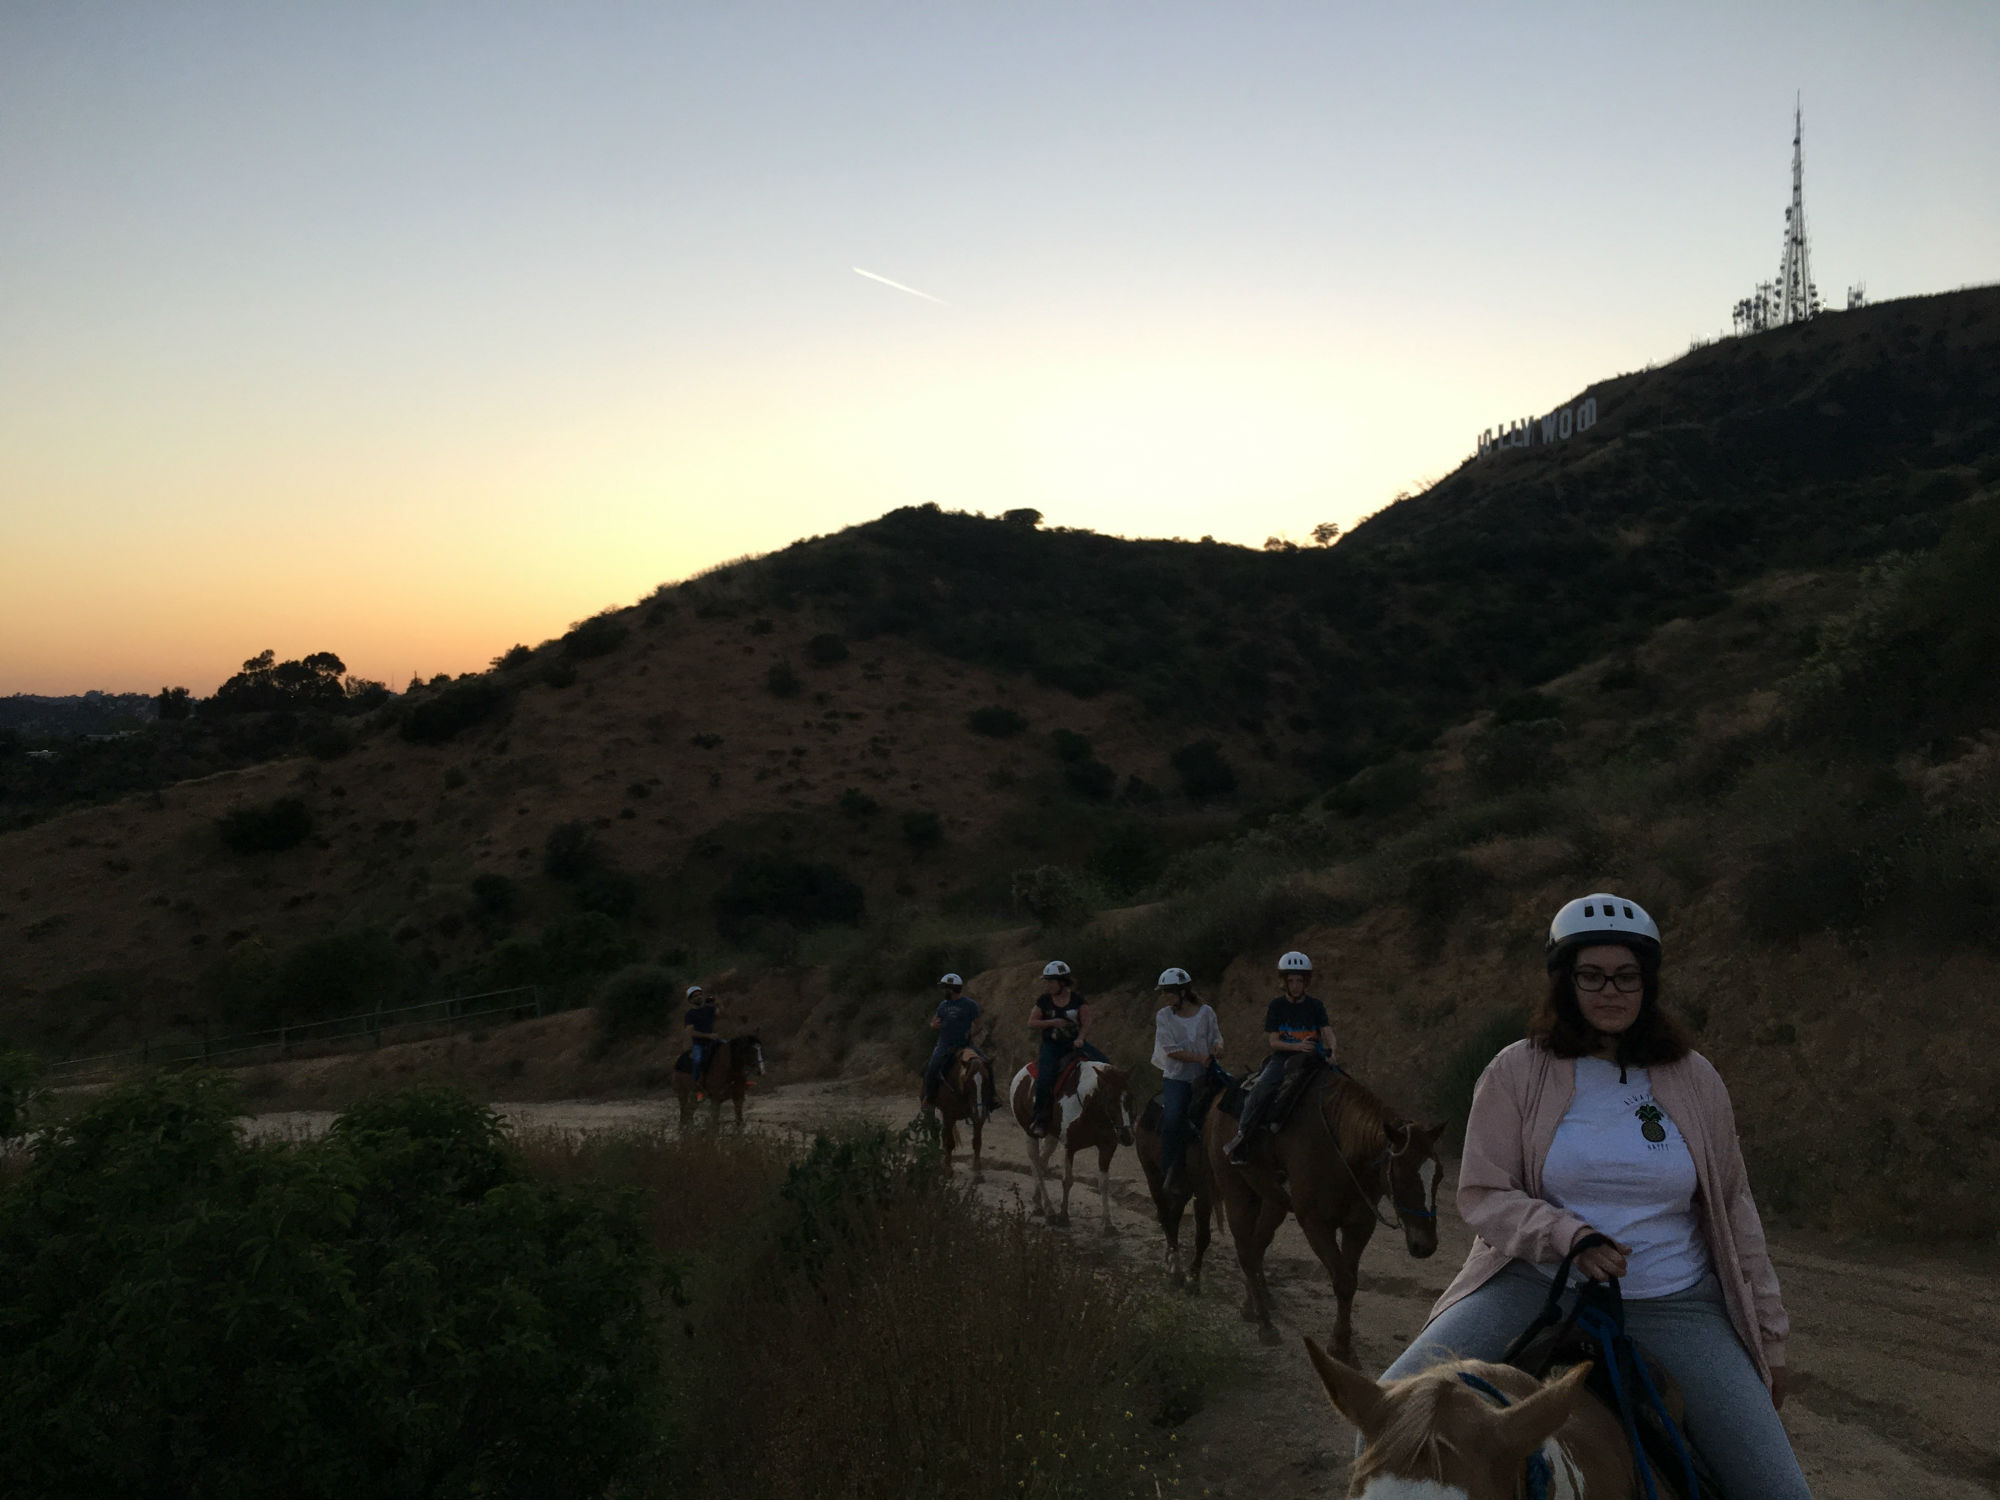 Ride a horse in Hollywood!